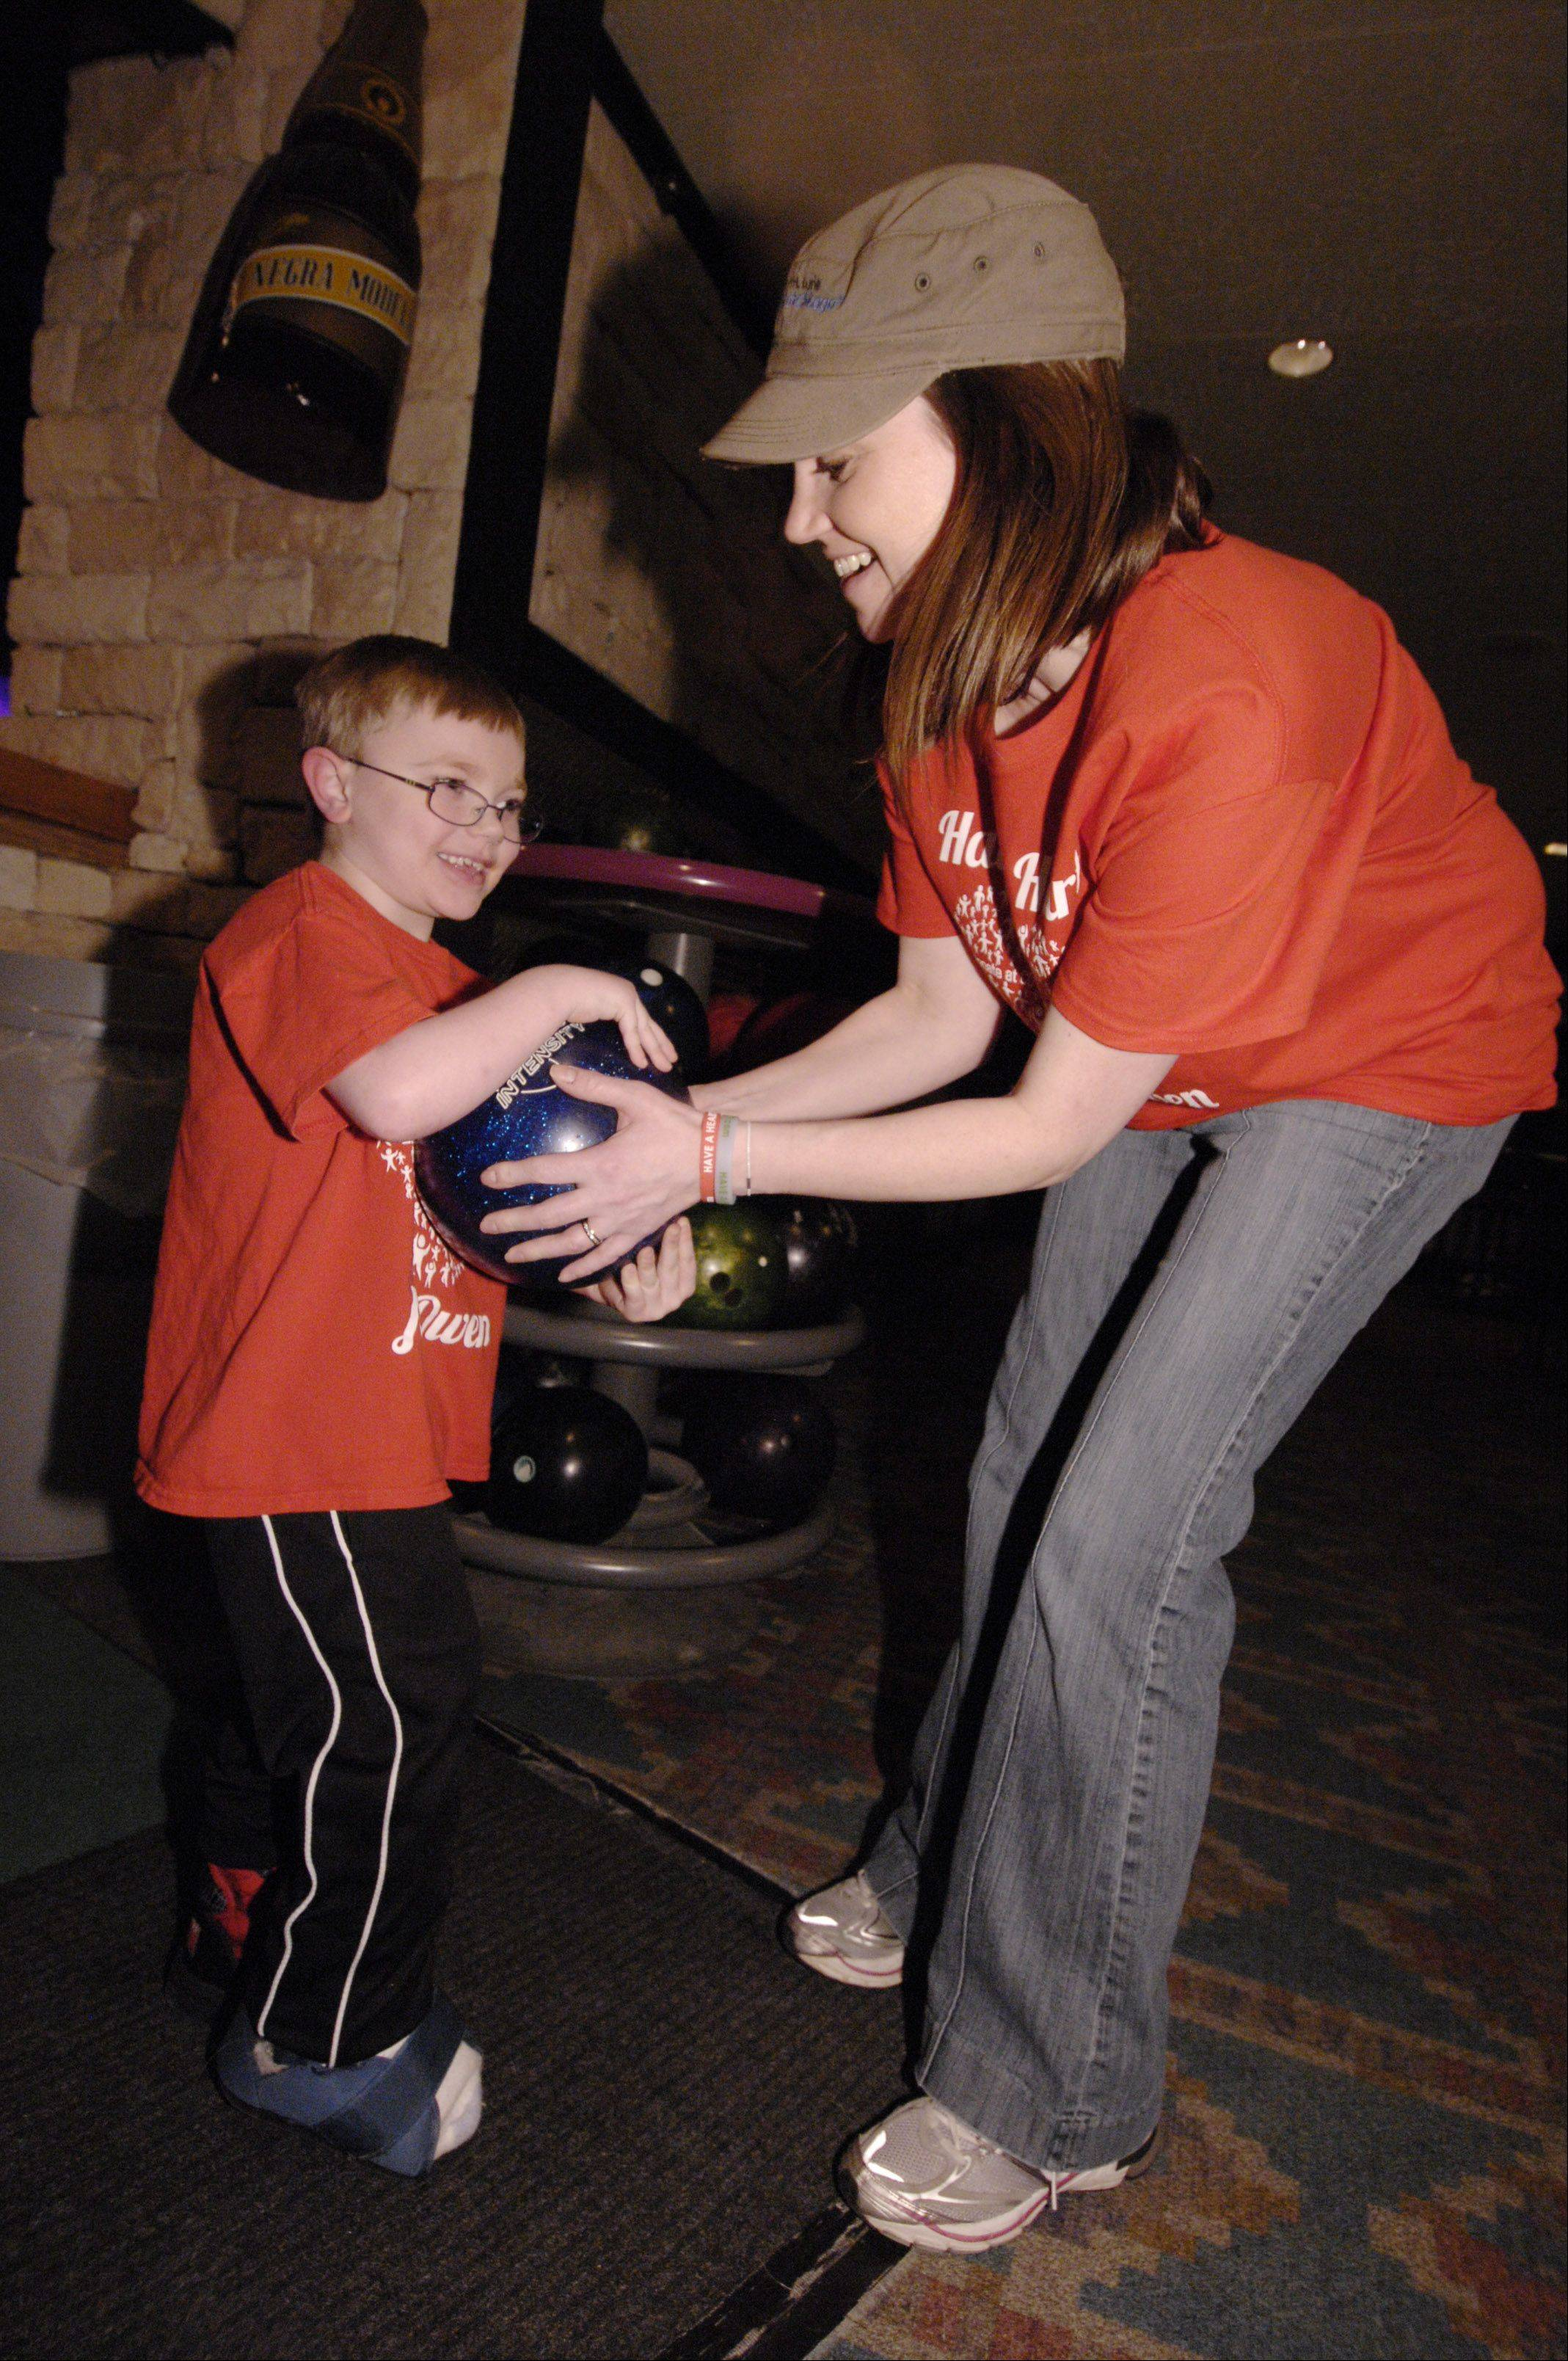 Owen Payton, 6, and his mother, Christina, of West Chicago, pick out a bowling ball during the Children's Organ Transplant Association's fundraiser for him Sunday at Bowling Green Sports Center. Owen, who was born with a congenital heart defect, is in need of a heart transplant.